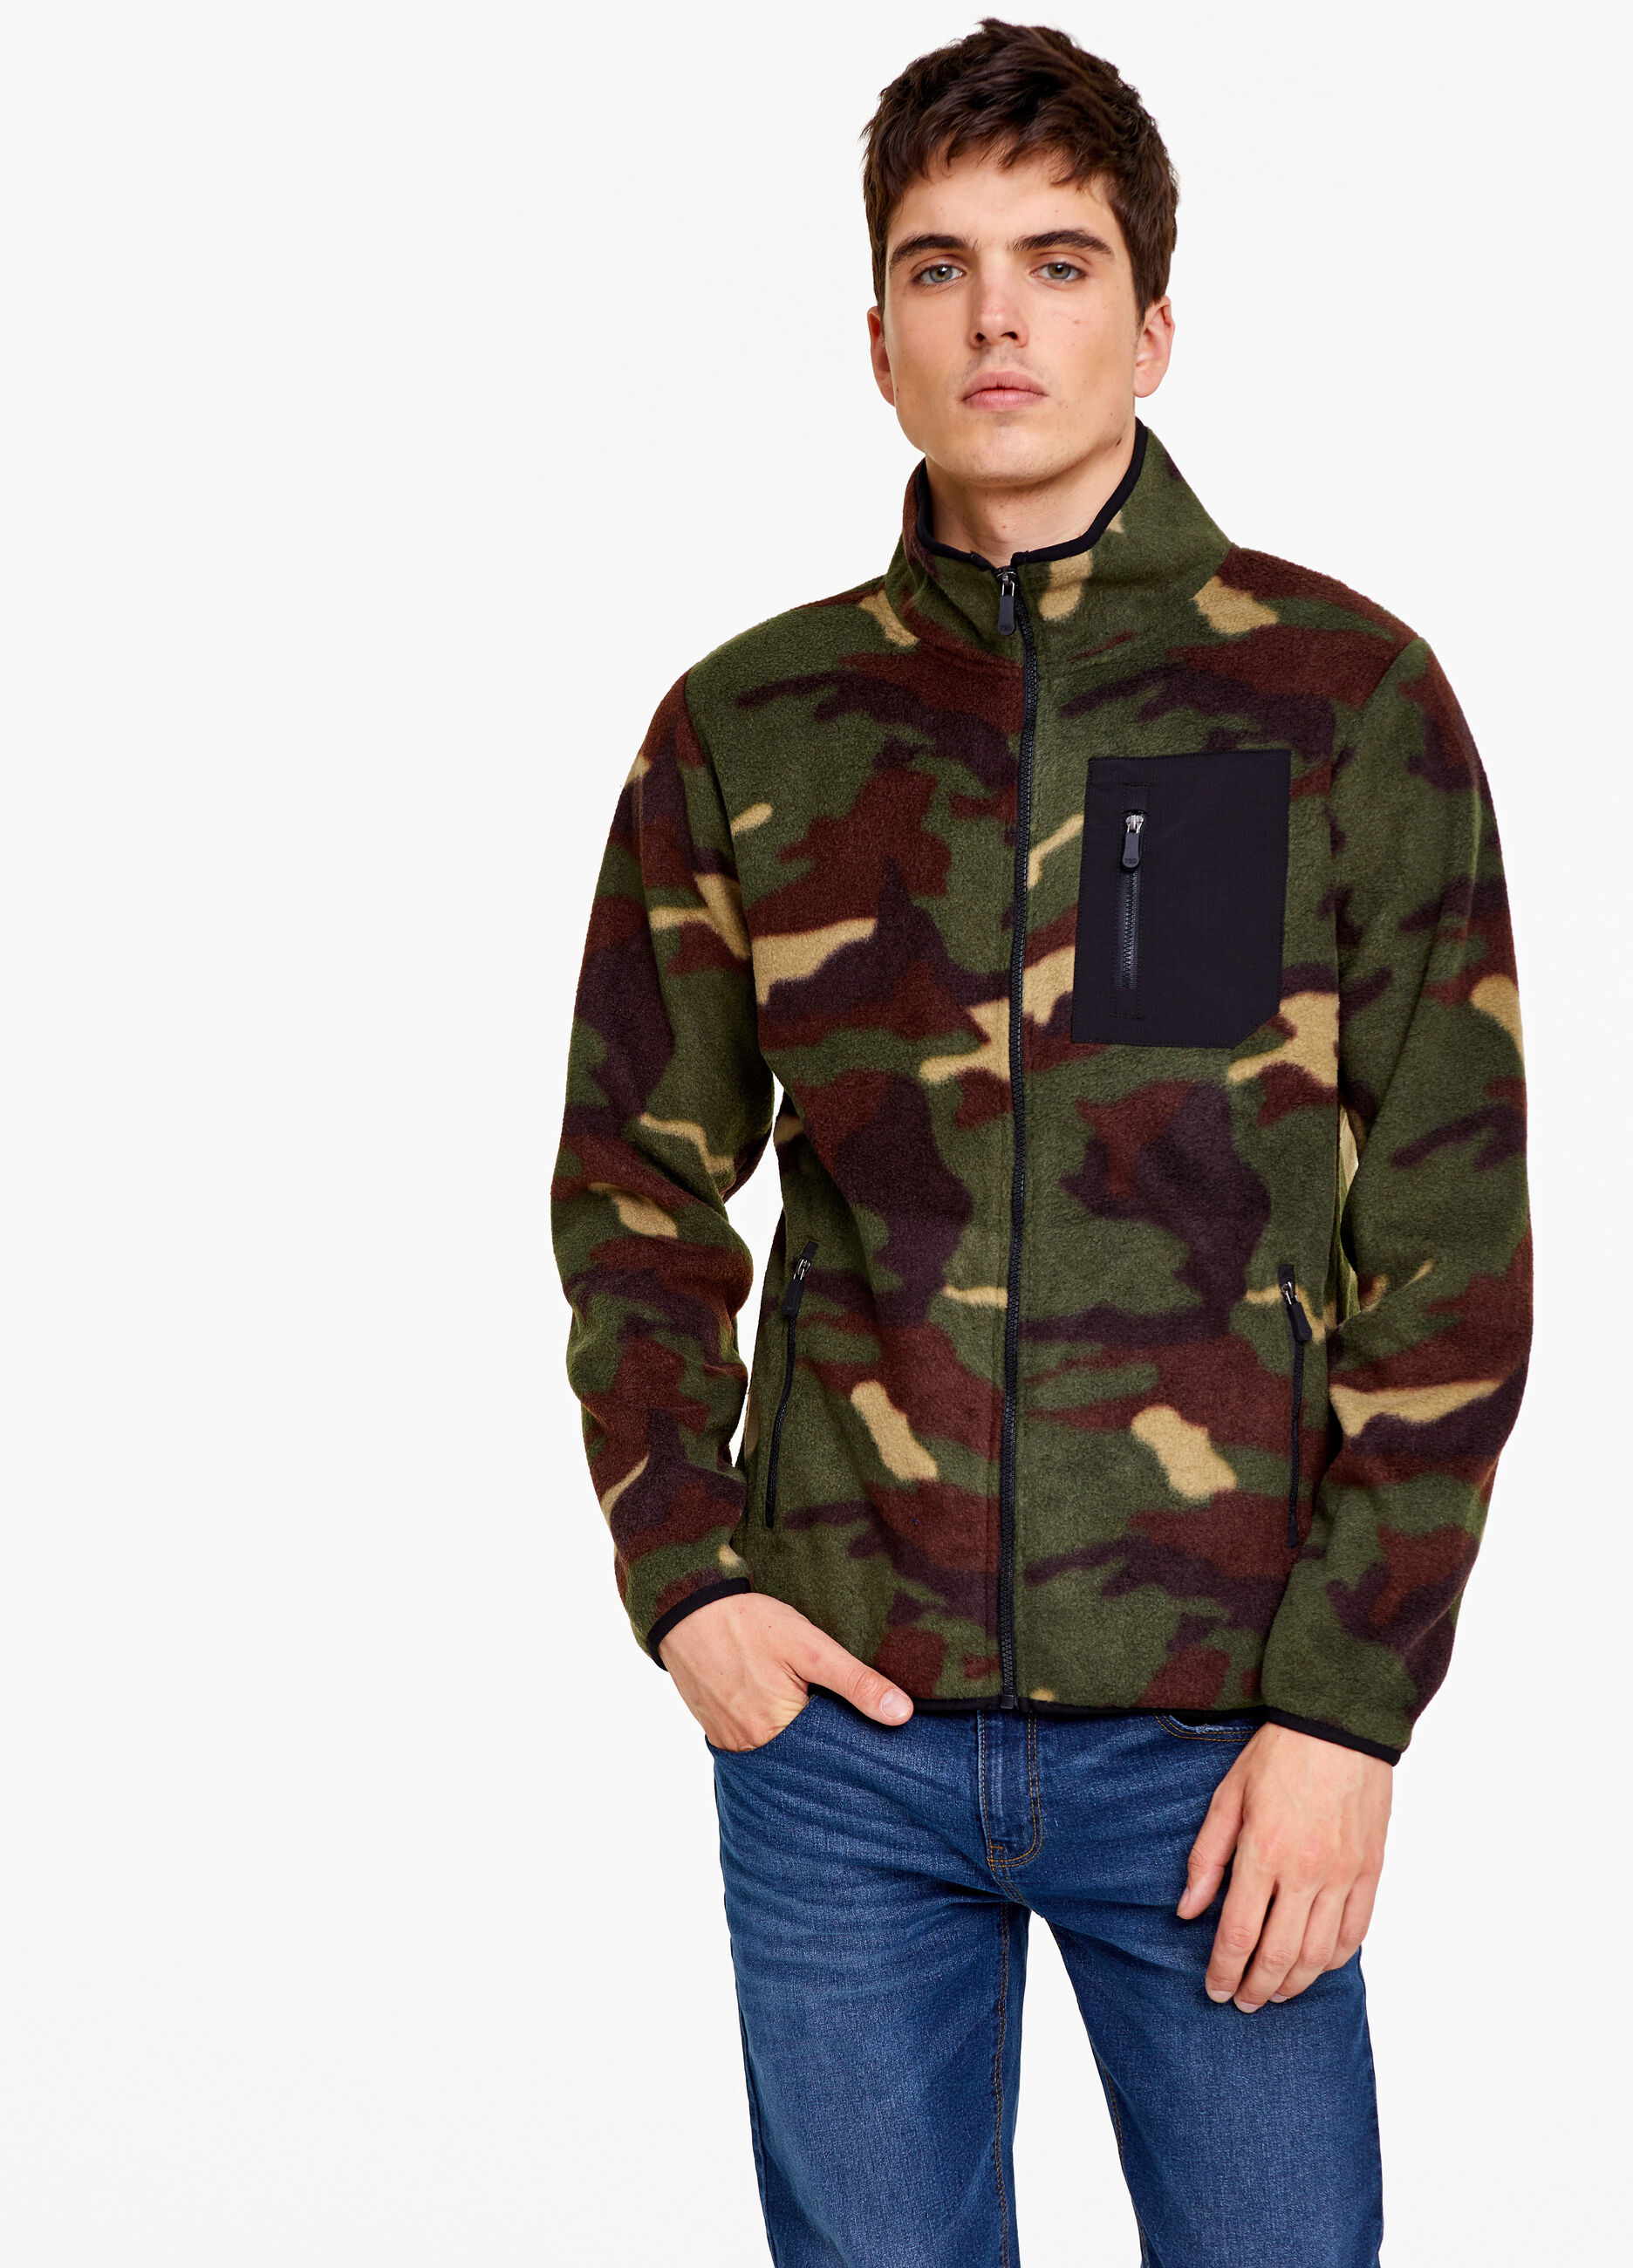 19 Sportive Lunghe Inverno Uomo 2018 Felpe Online Ovs Autunno tRqBW0w 11dceed0215